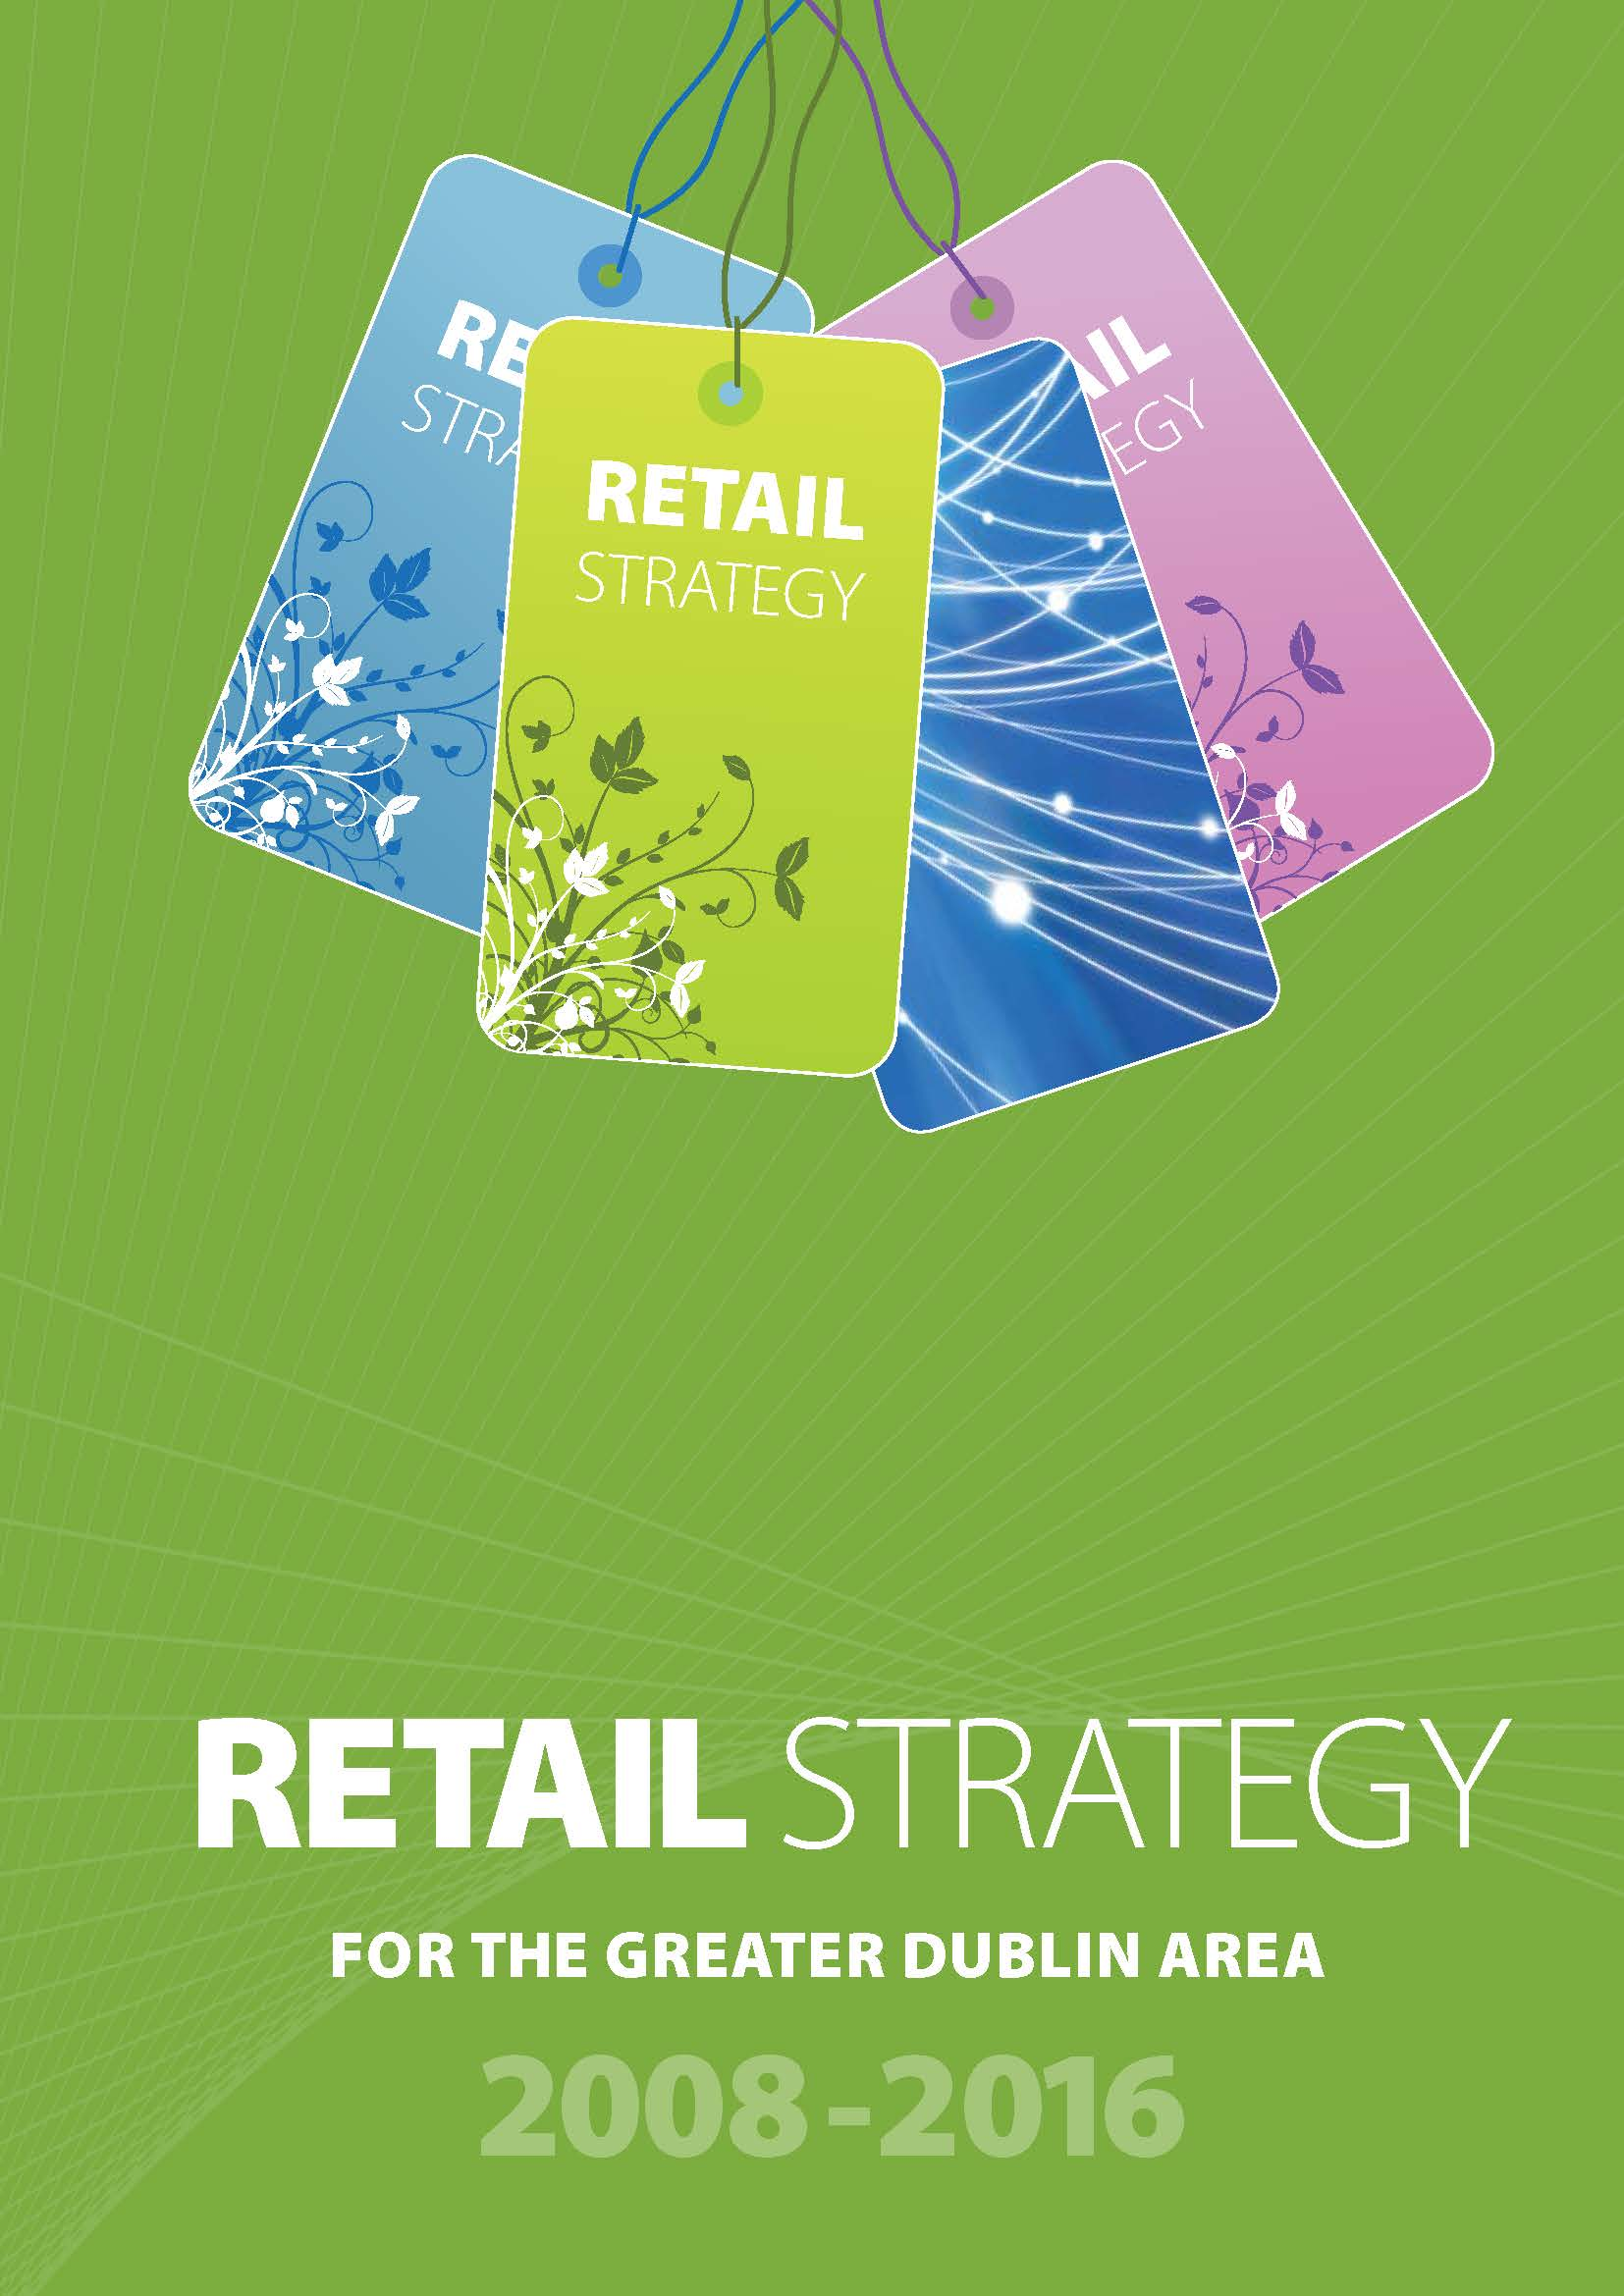 Greater-Dublin-Area-Retail-Strategy-2008-2016 pic